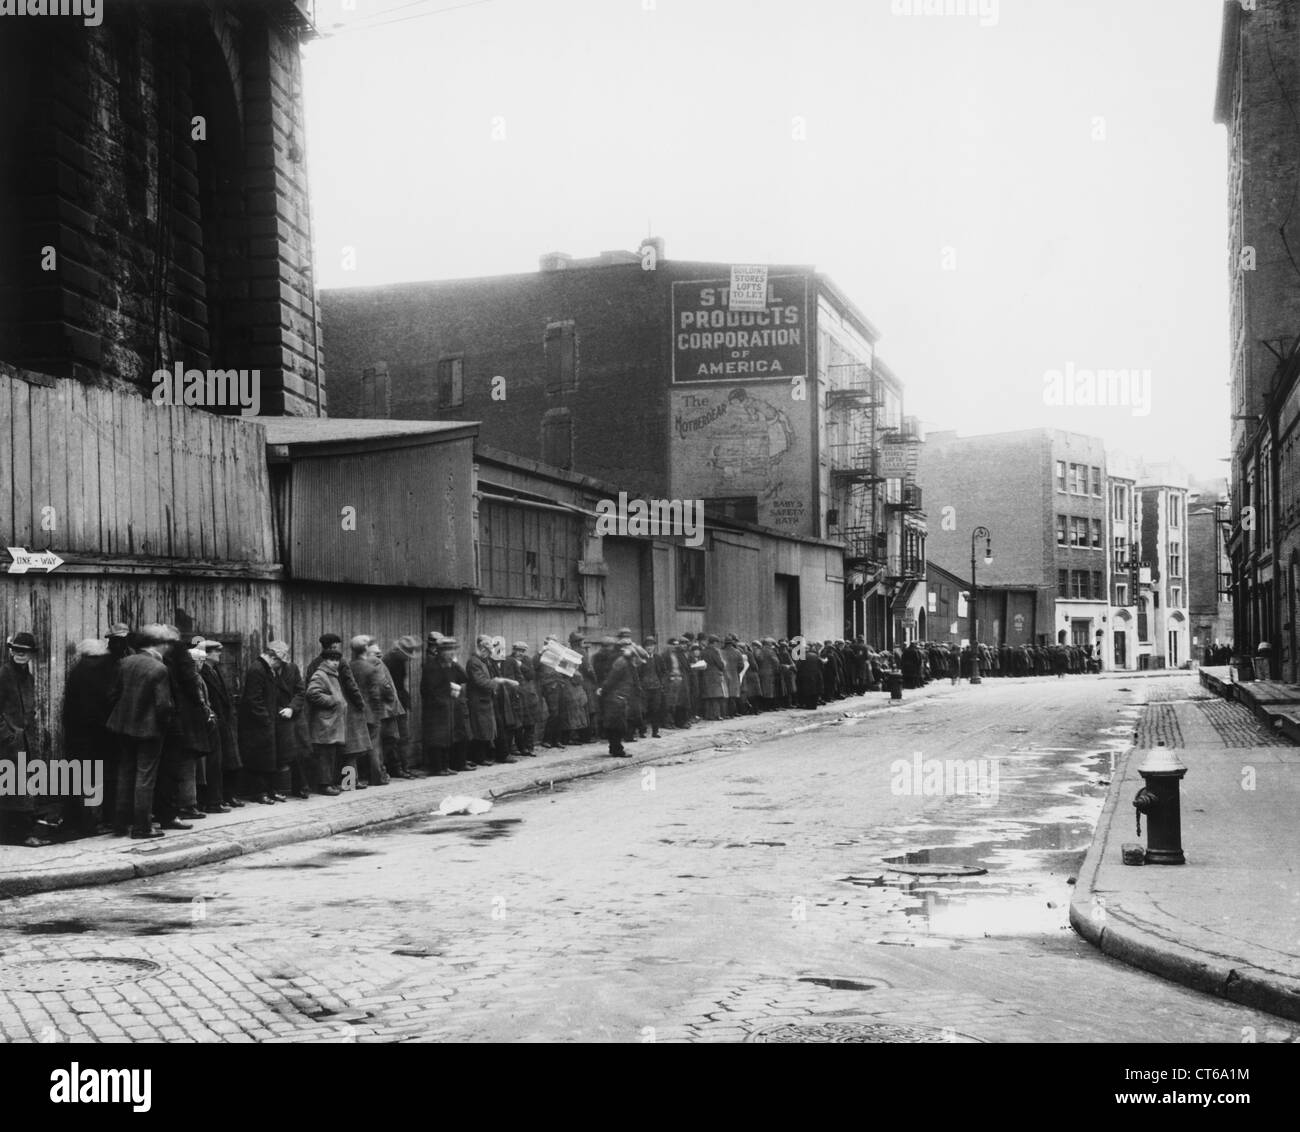 Men waiting on a bread line, New York City - Stock Image